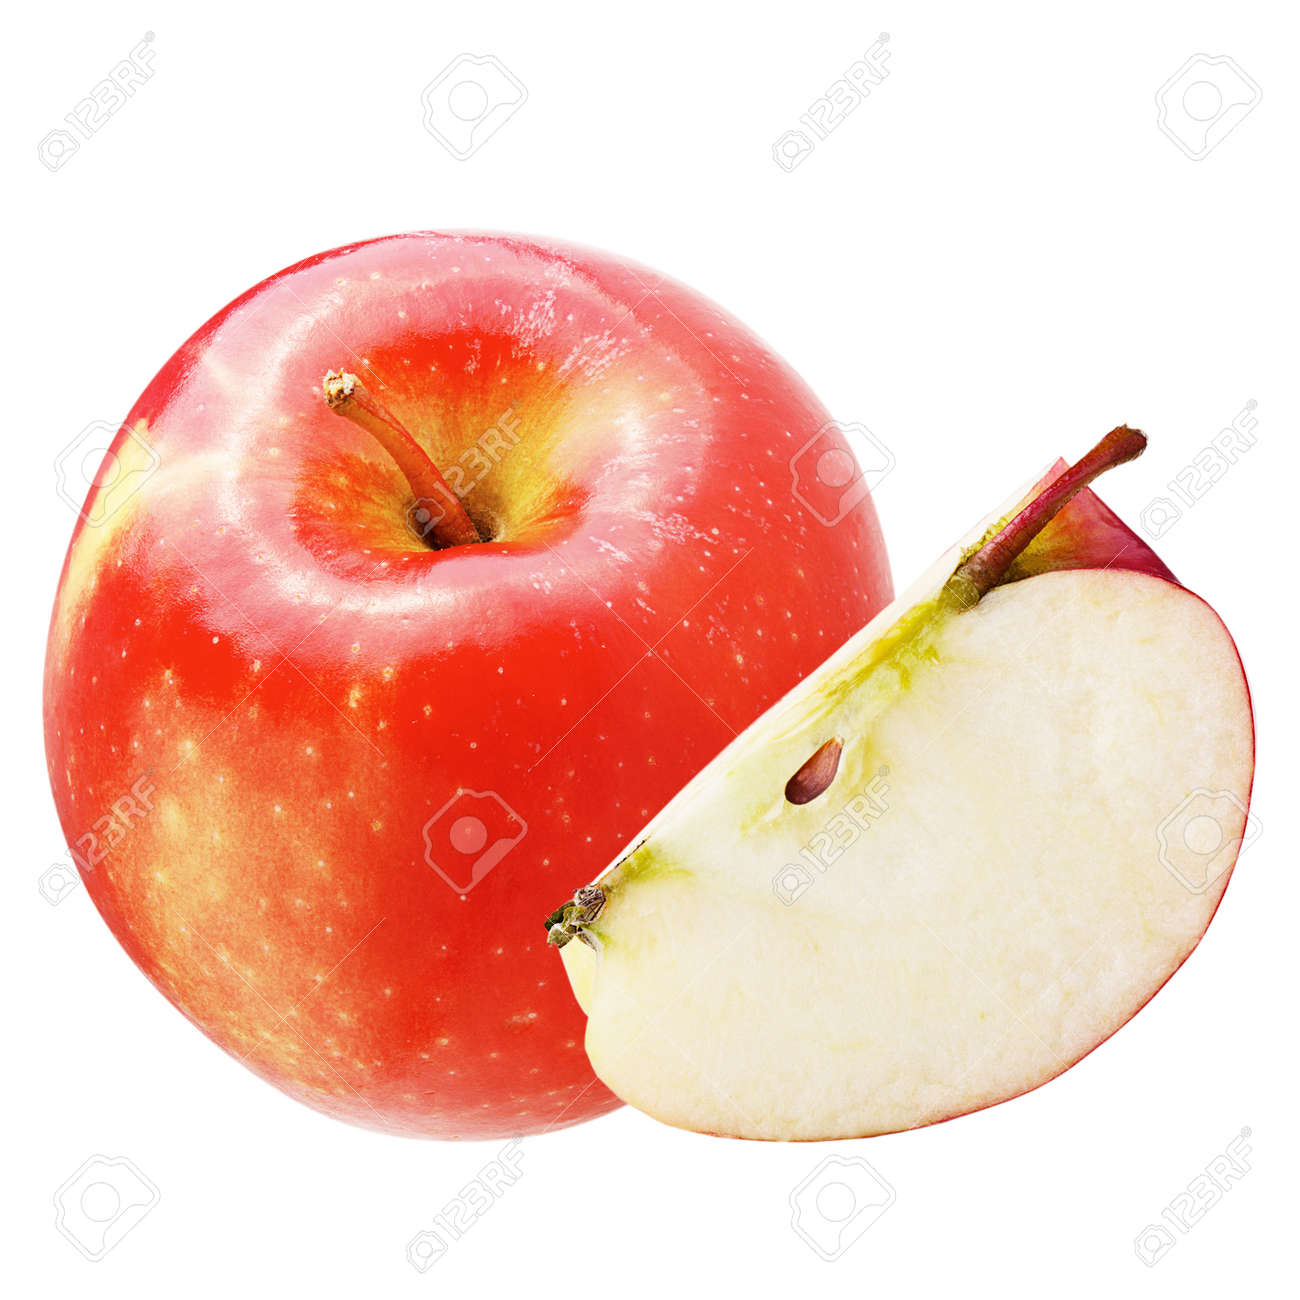 Isolated apples. Fresh apple isolated on white background with clipping path as package design element. Archivio Fotografico - 97027406